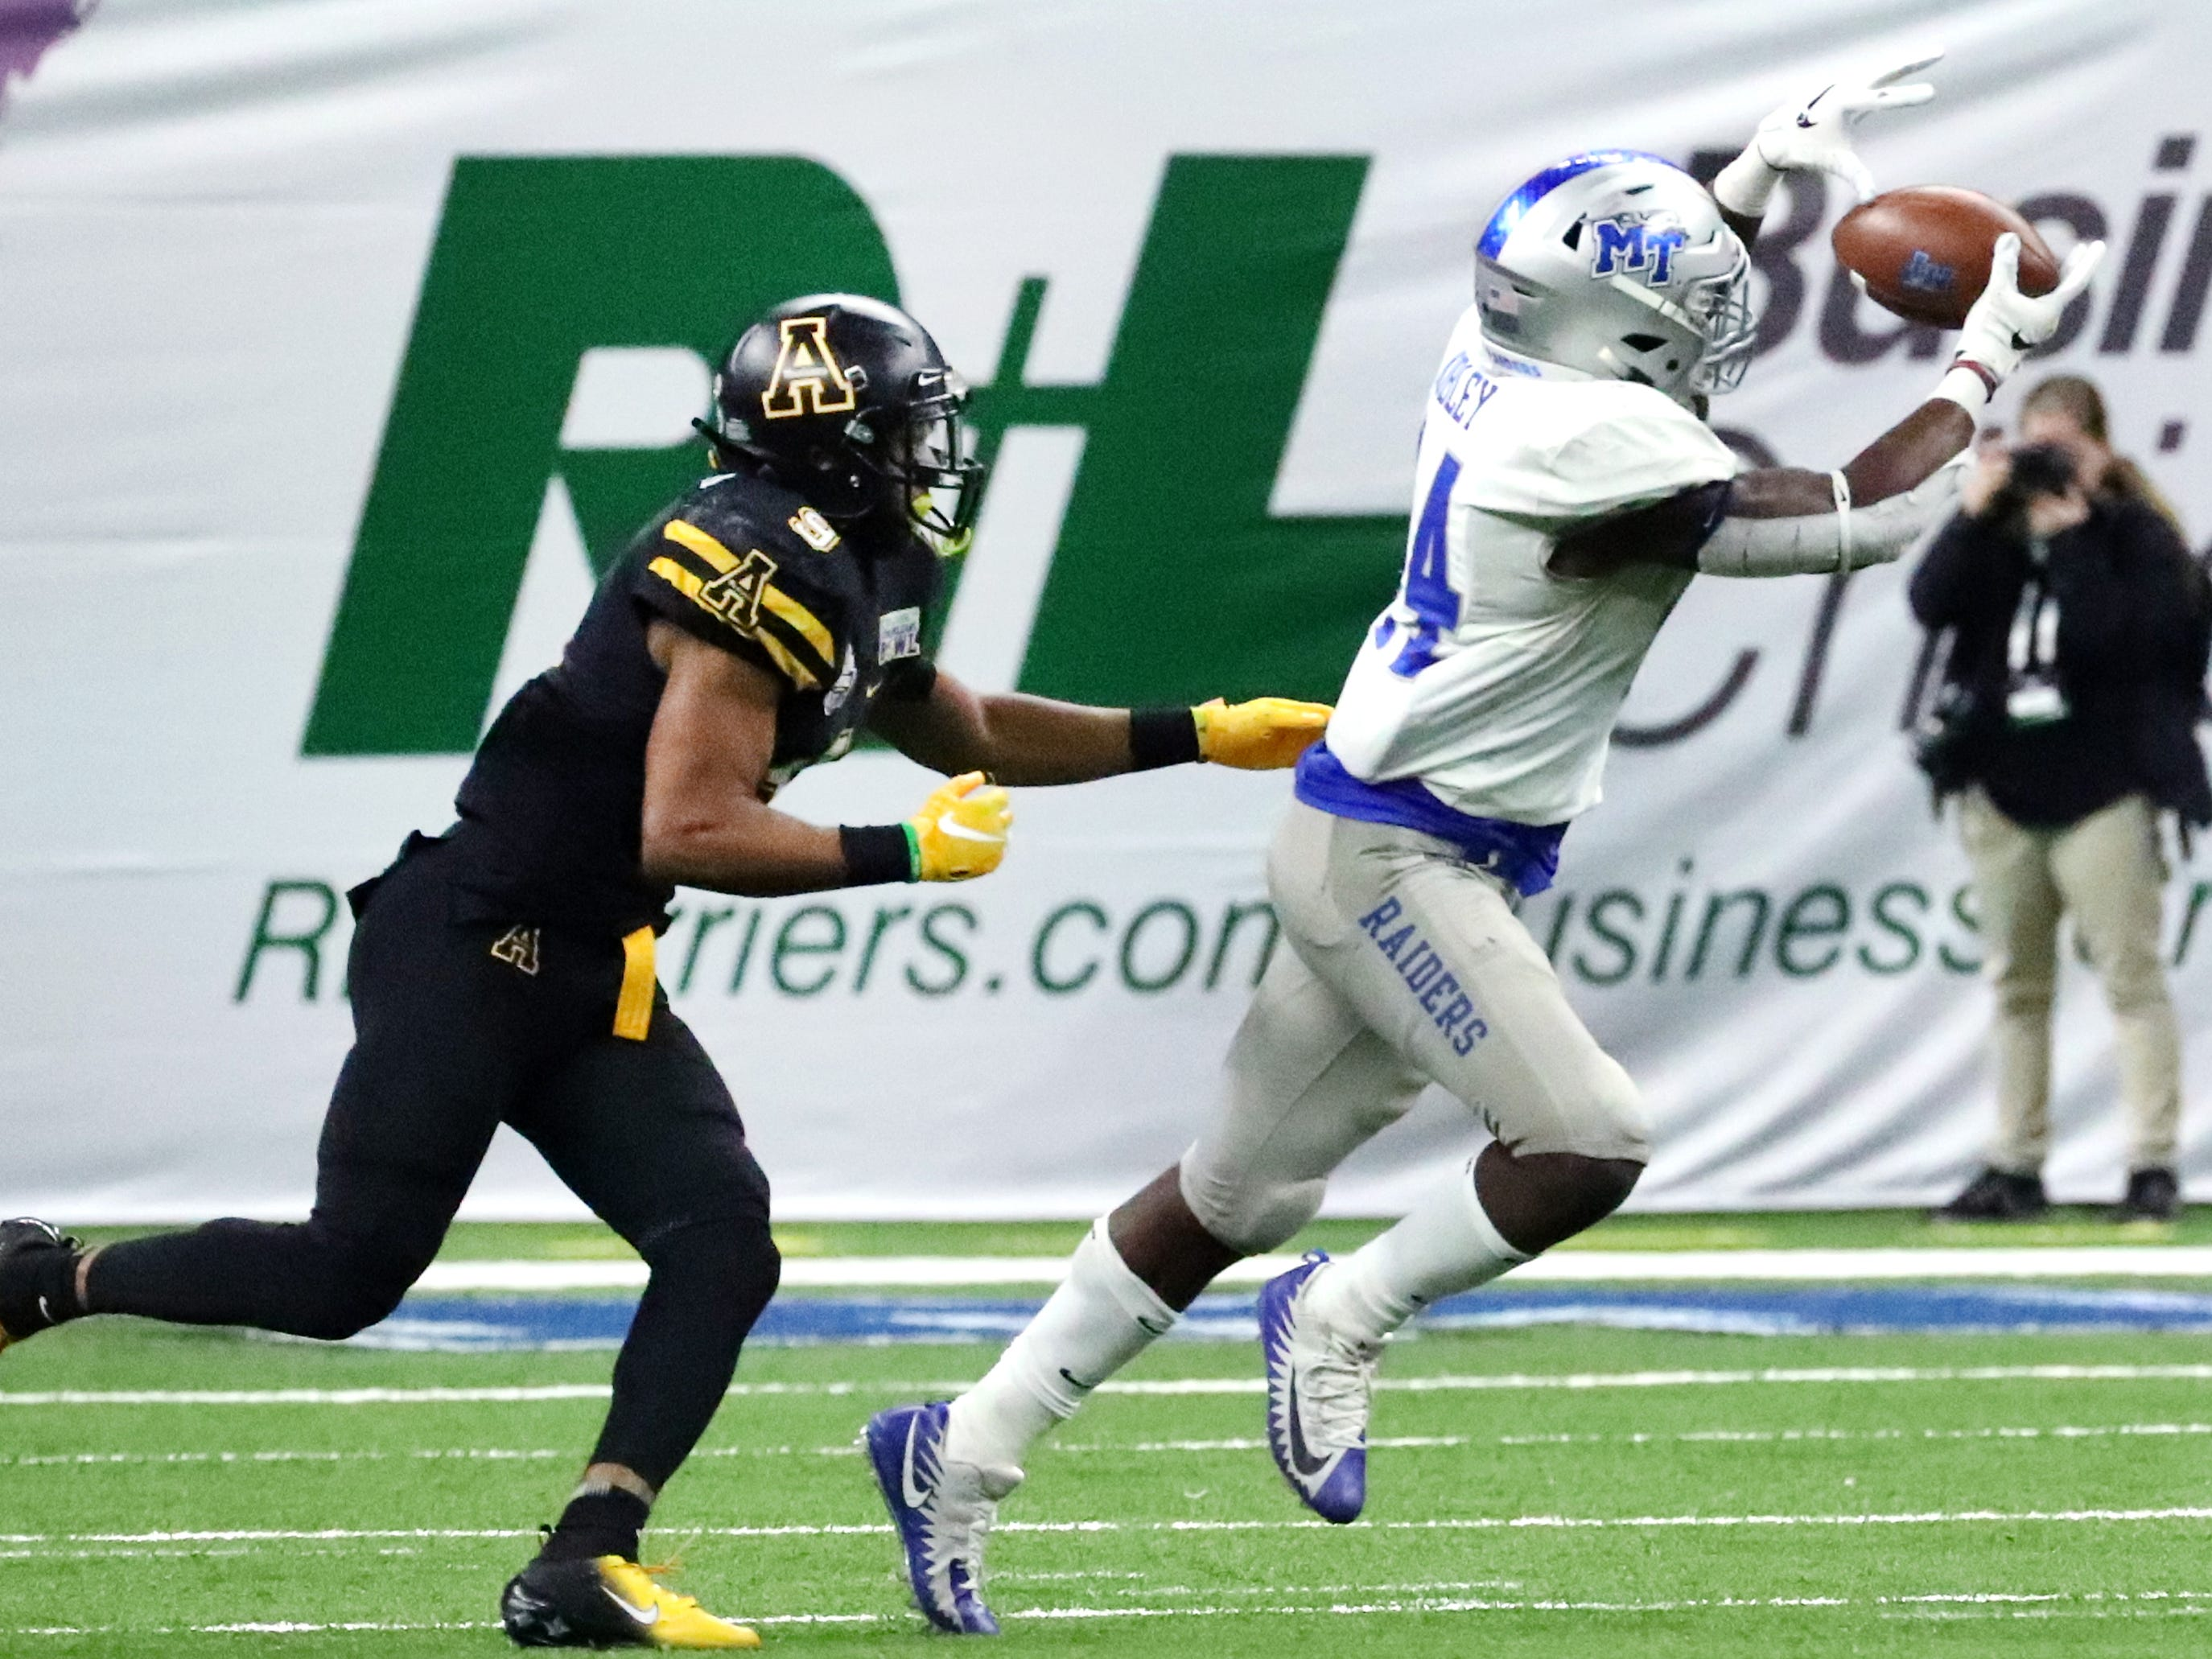 Middle Tennessee Blue Raiders running back Chaton Mobley (44) makes a catch as Appalachian State Mountaineers defensive back Austin Exford (9) moves in for a tackle on Saturday, Dec. 15, 2018, during the New Orleans Bowl.